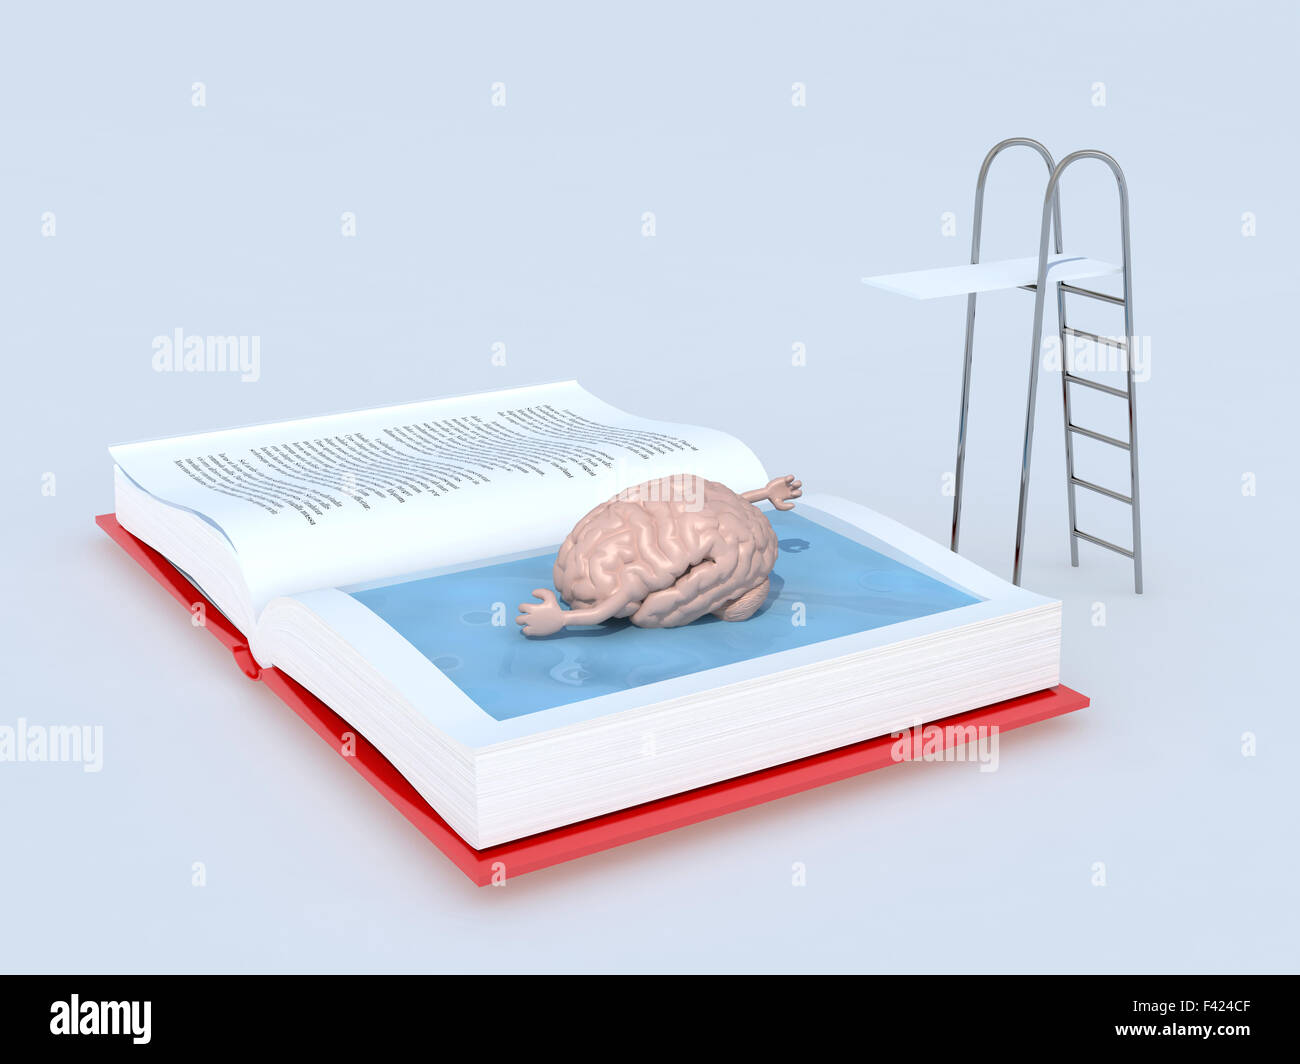 human brain that swims on the book, isolated 3d illustration - Stock Image